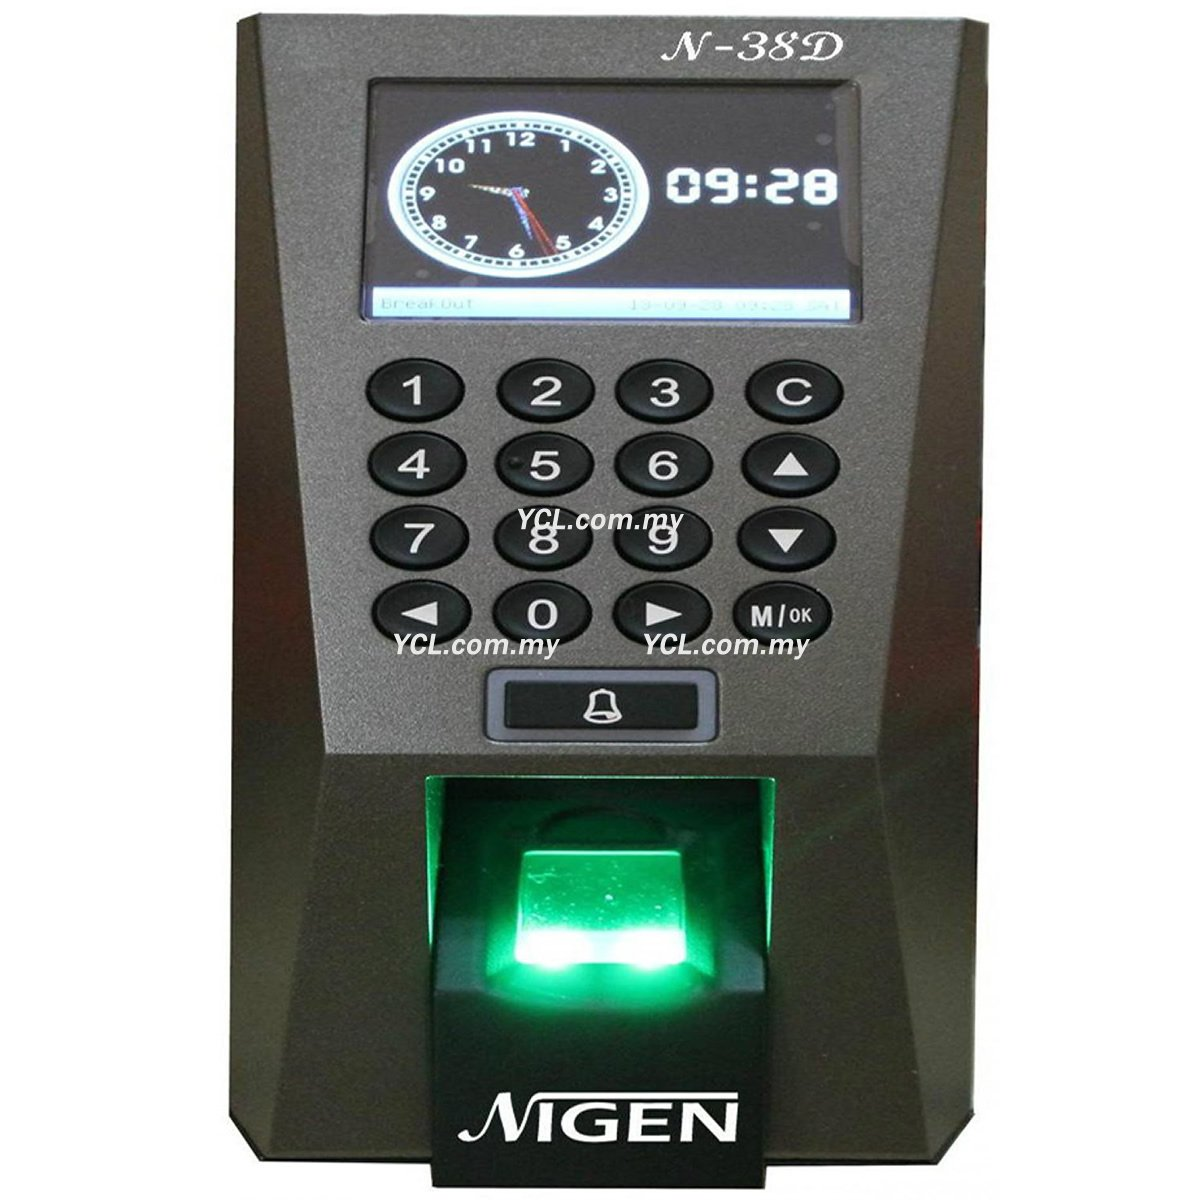 Nigen N-38D Fingerprint Time Attendance System with Door Access